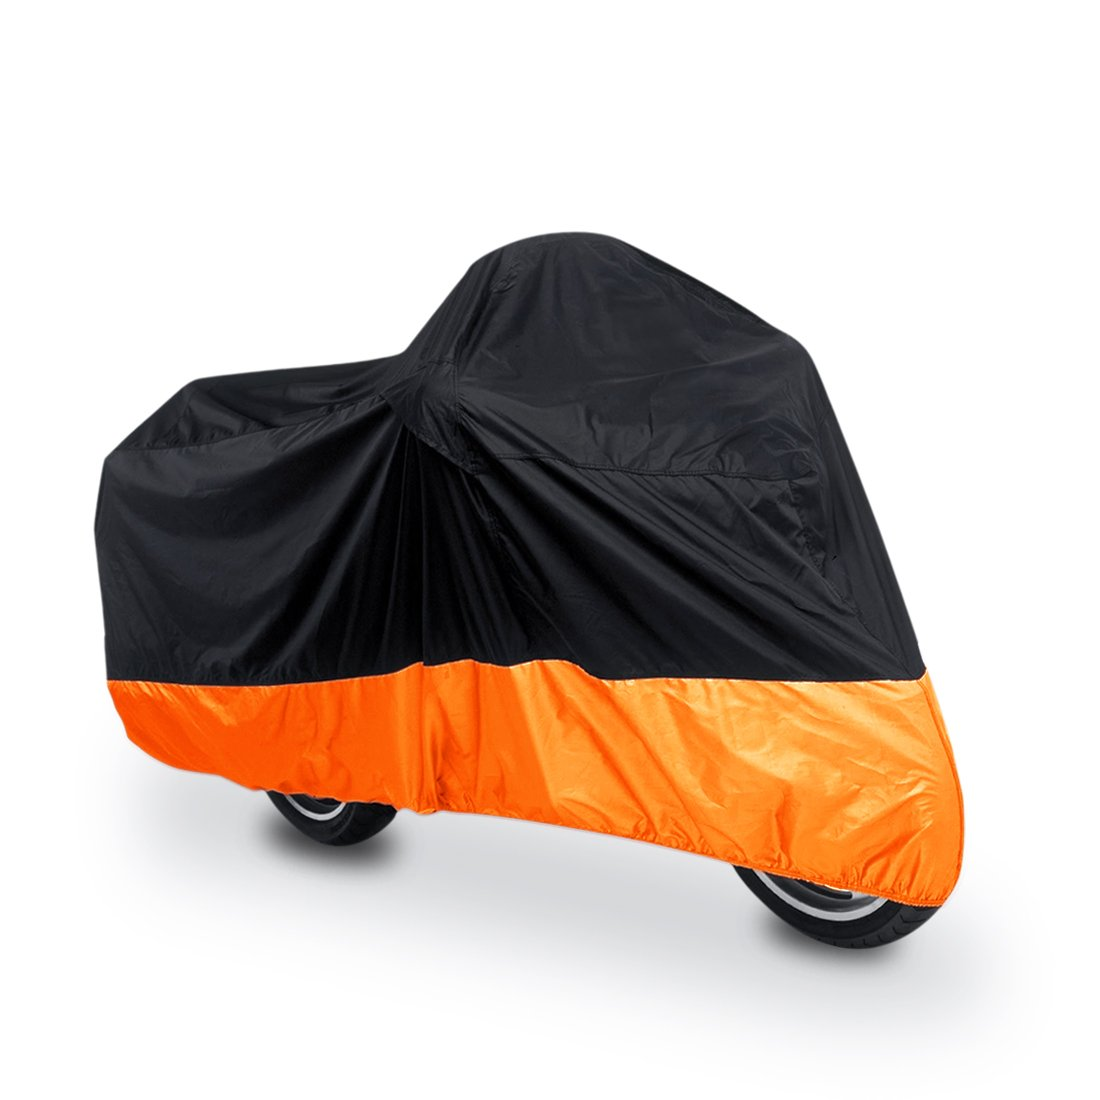 uxcell XXL 180T Rain Dust Protector Black+Orange Scooter Motorcycle Cover 104'' Fit to Honda Victory Kawasaki Yamaha Suzuki Harley Davidson